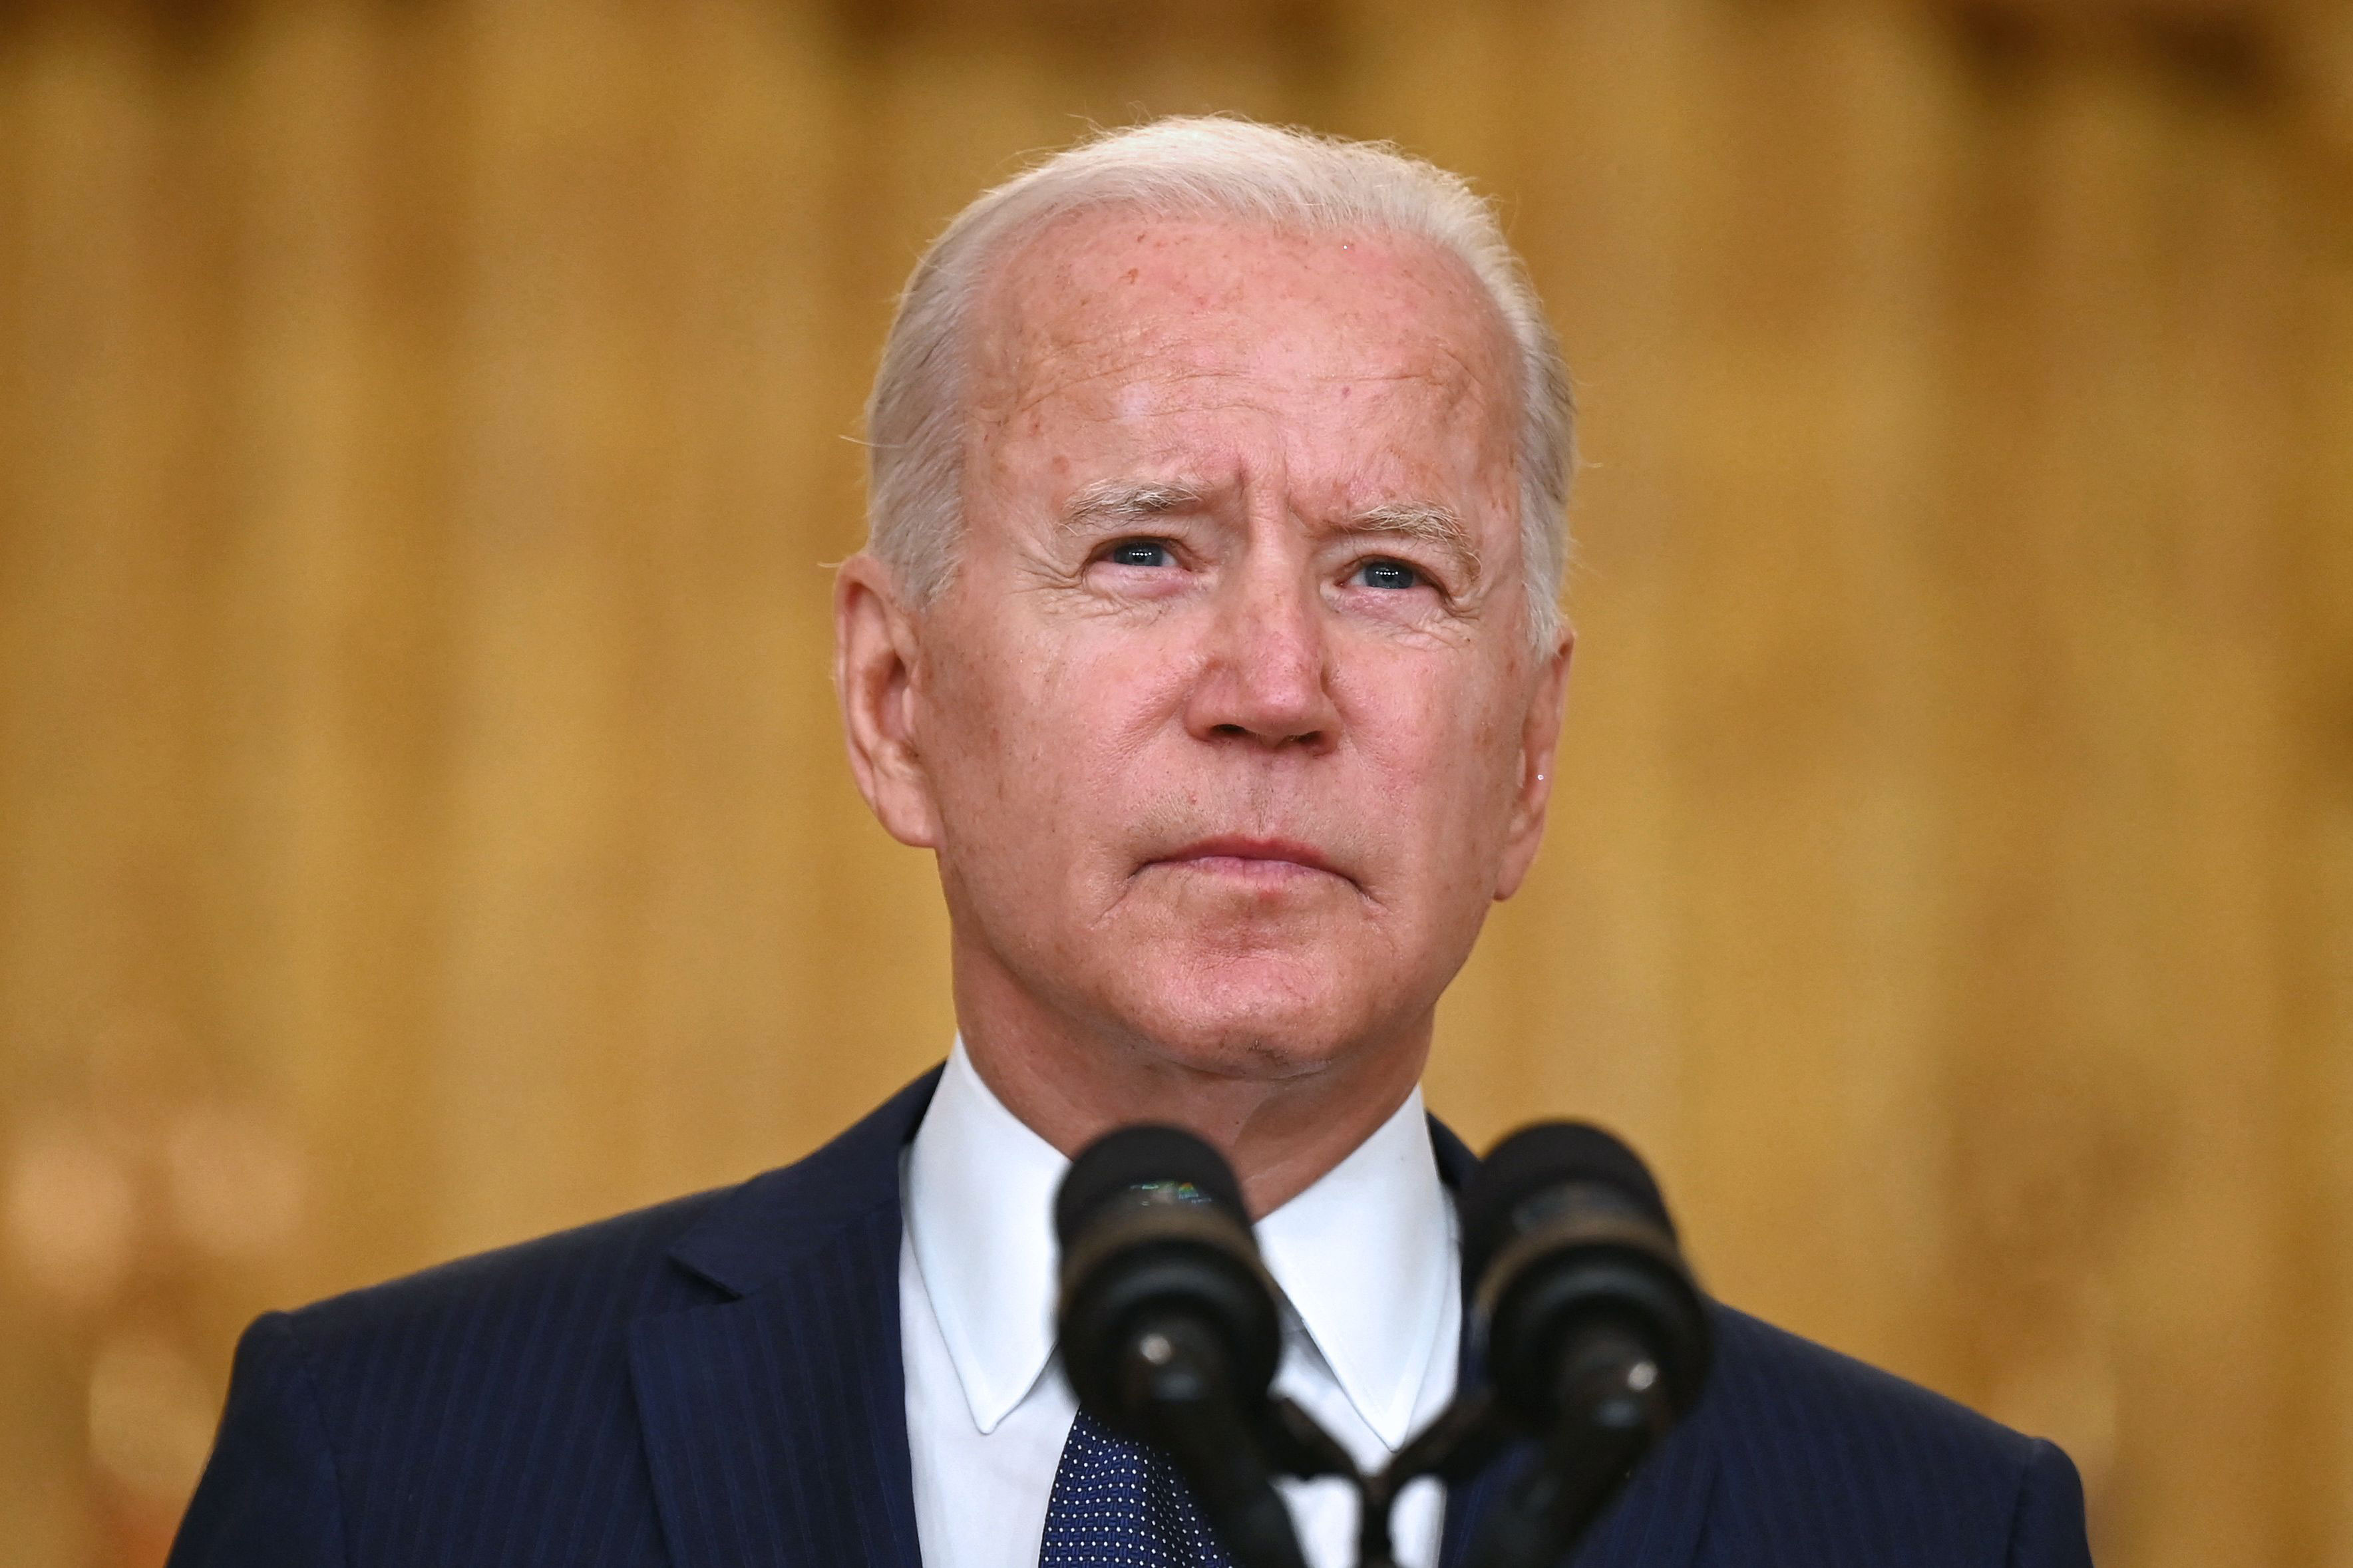 President Joe Biden delivers remarks in the East Room of the White House in Washington, DC on August 26.